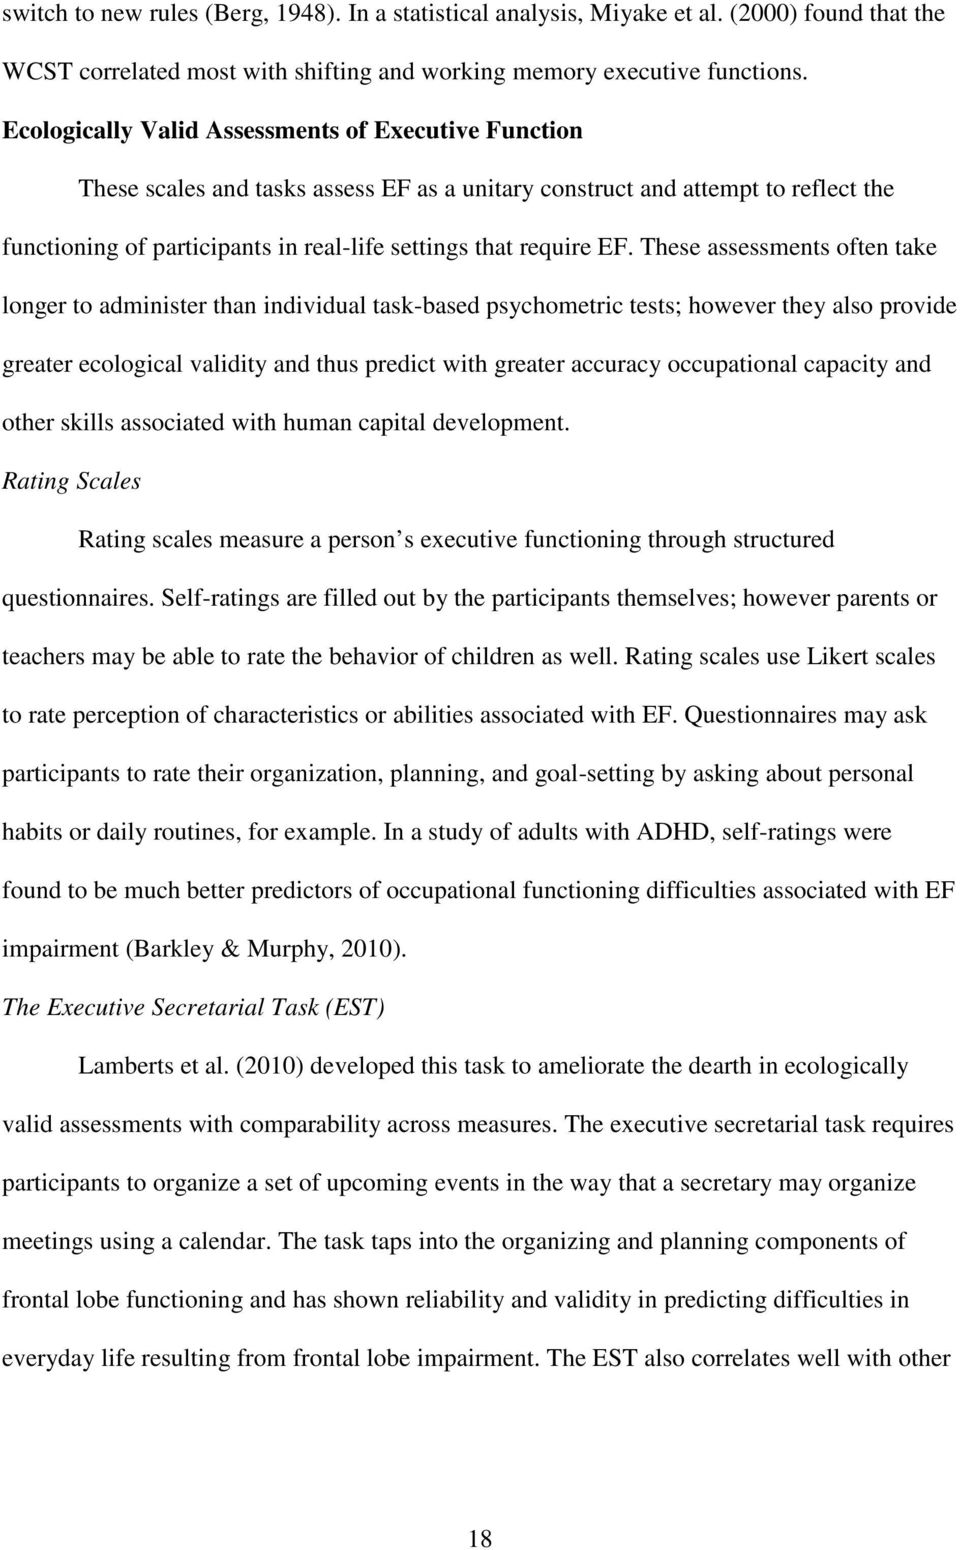 EF. These assessments often take longer to administer than individual task-based psychometric tests; however they also provide greater ecological validity and thus predict with greater accuracy